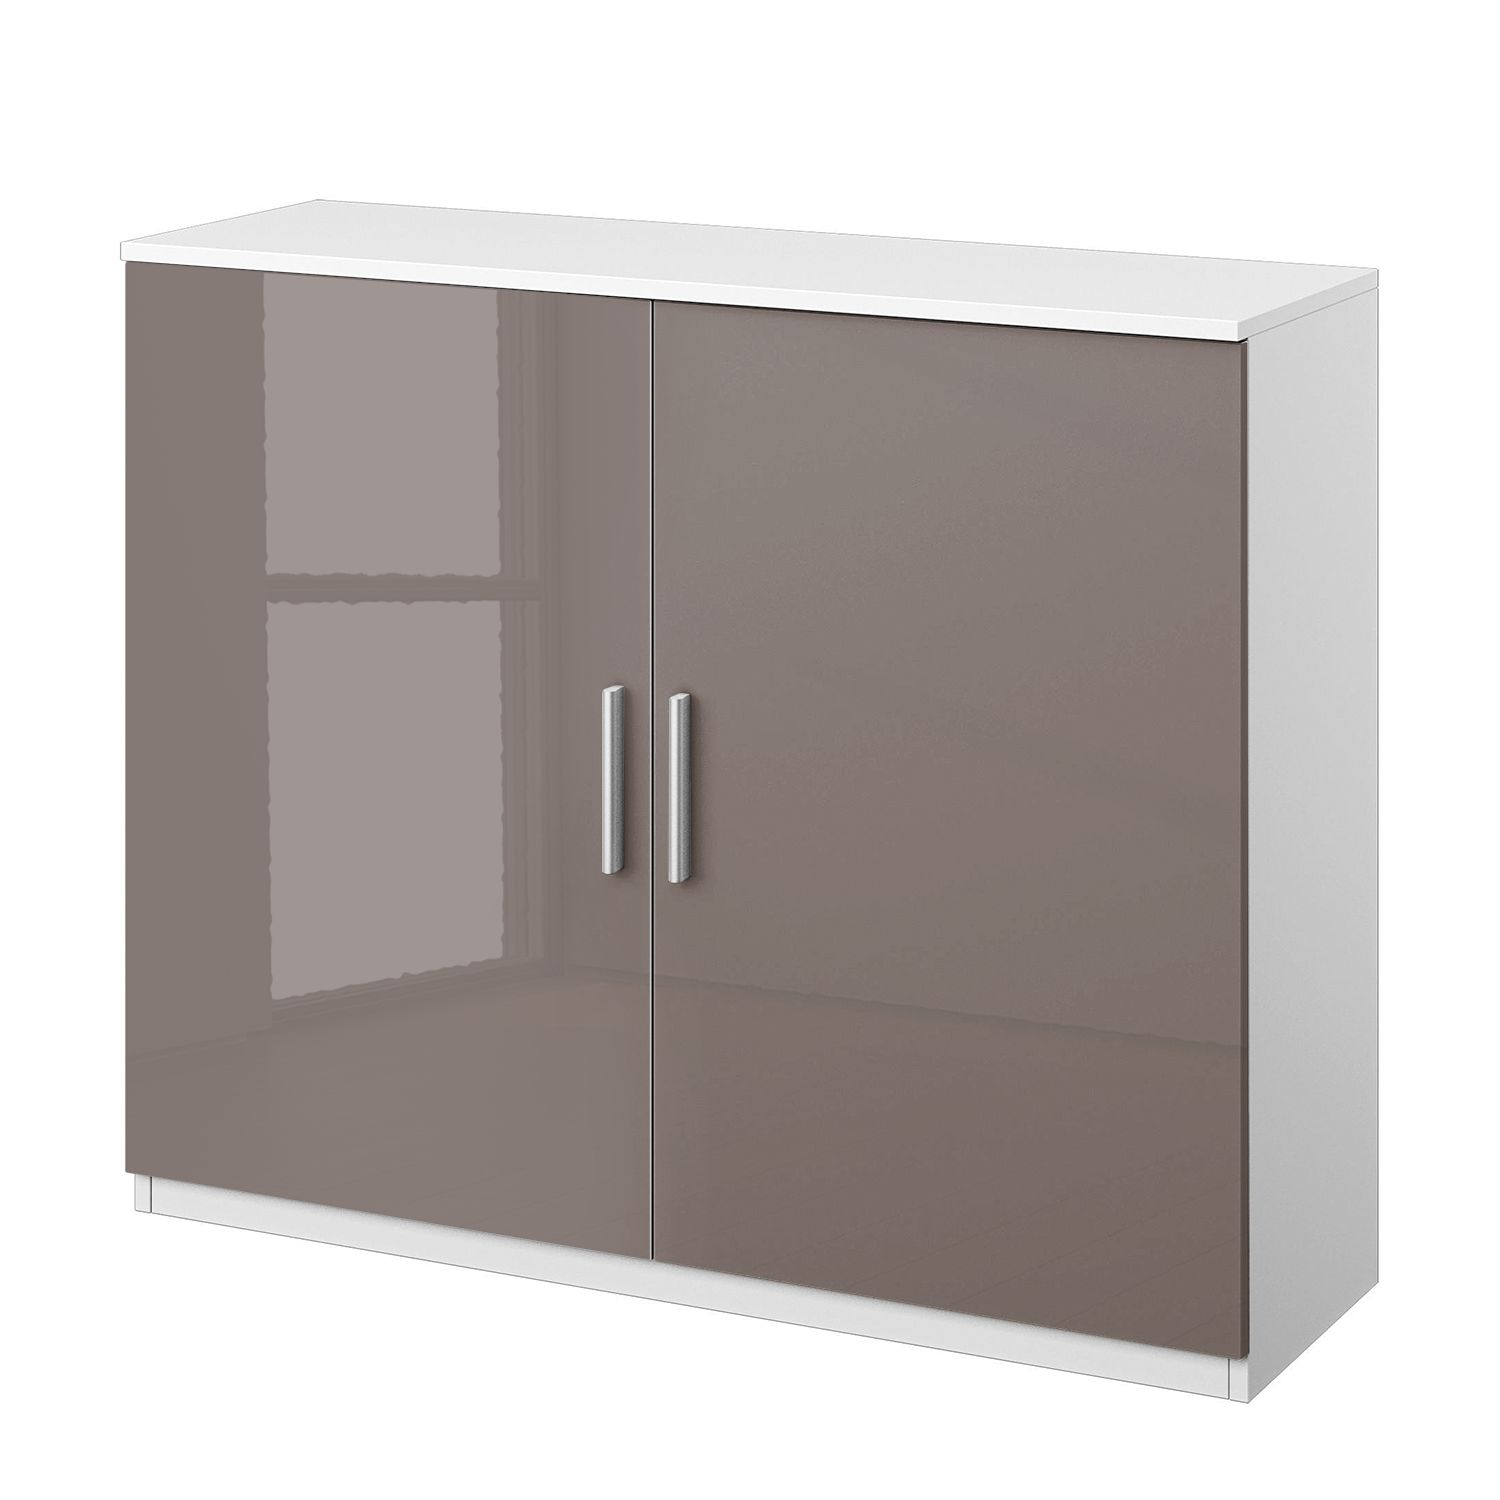 Home 24 - Commode celle i - blanc alpin / gris lava brillant, rauch packs